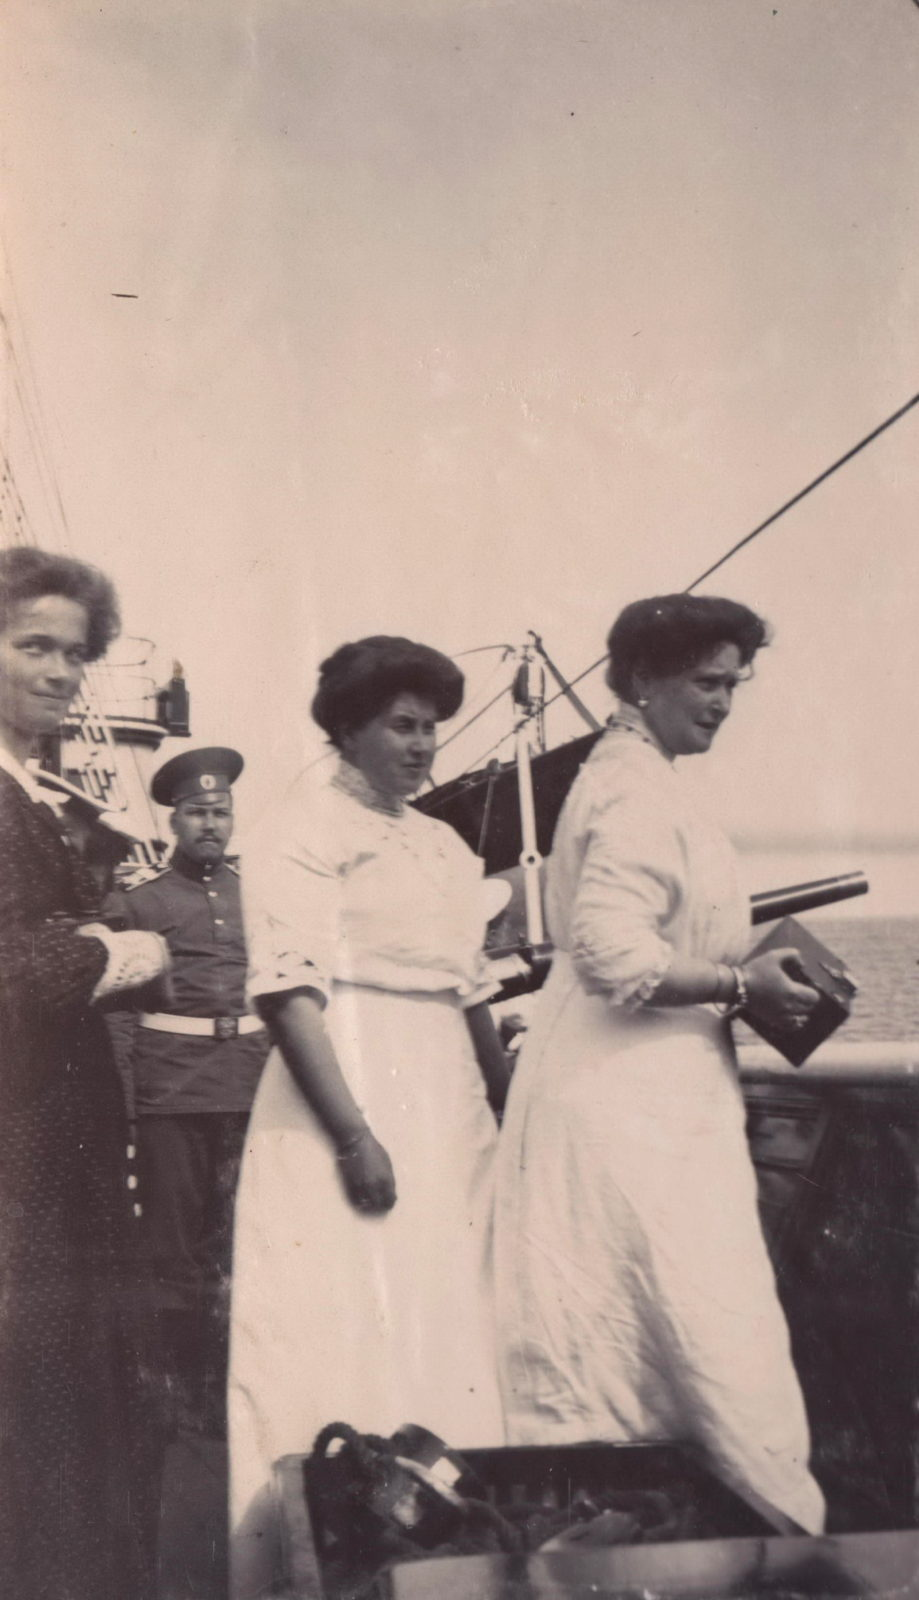 Empress Alexandra Feodorovna with a camera in her hands.